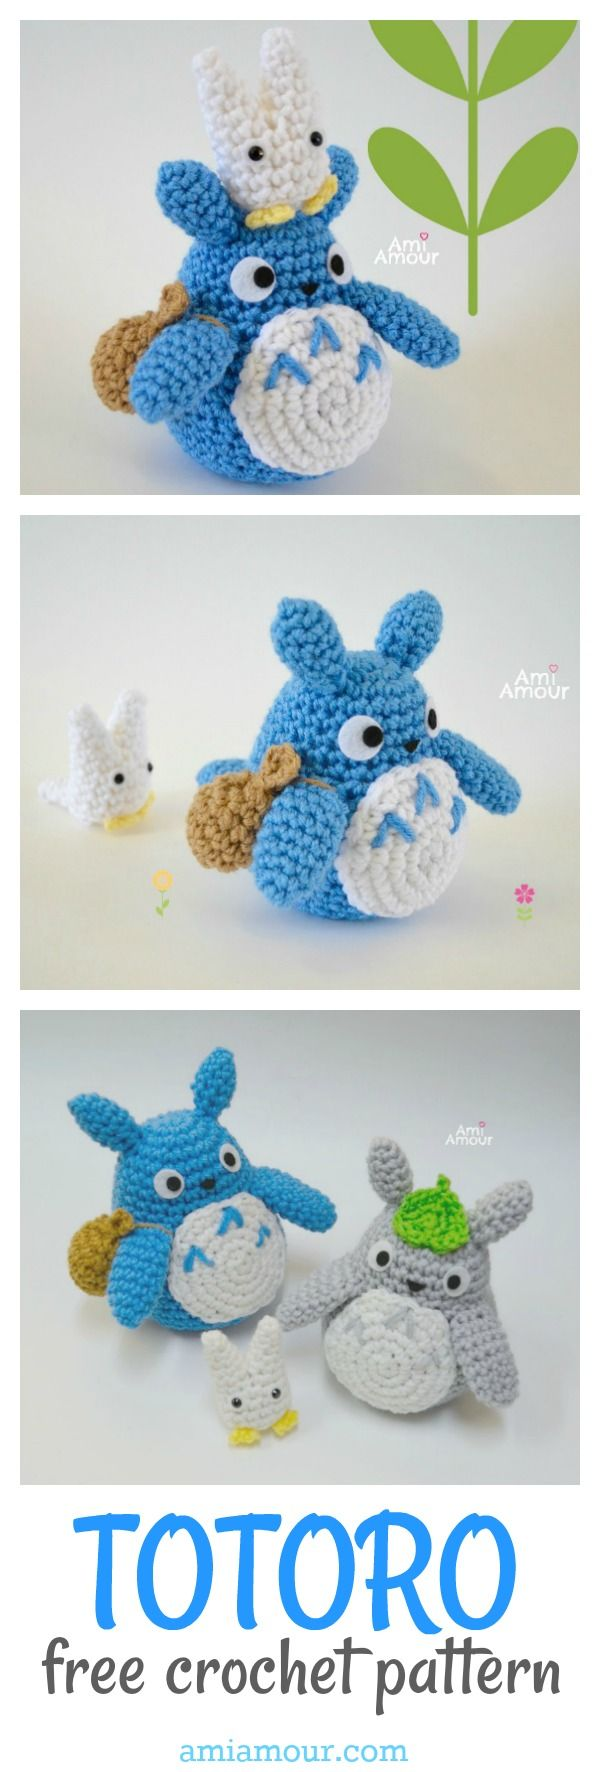 Totoro Crochet Pattern - Amigurumi Patterns, Crochet Patterns ...